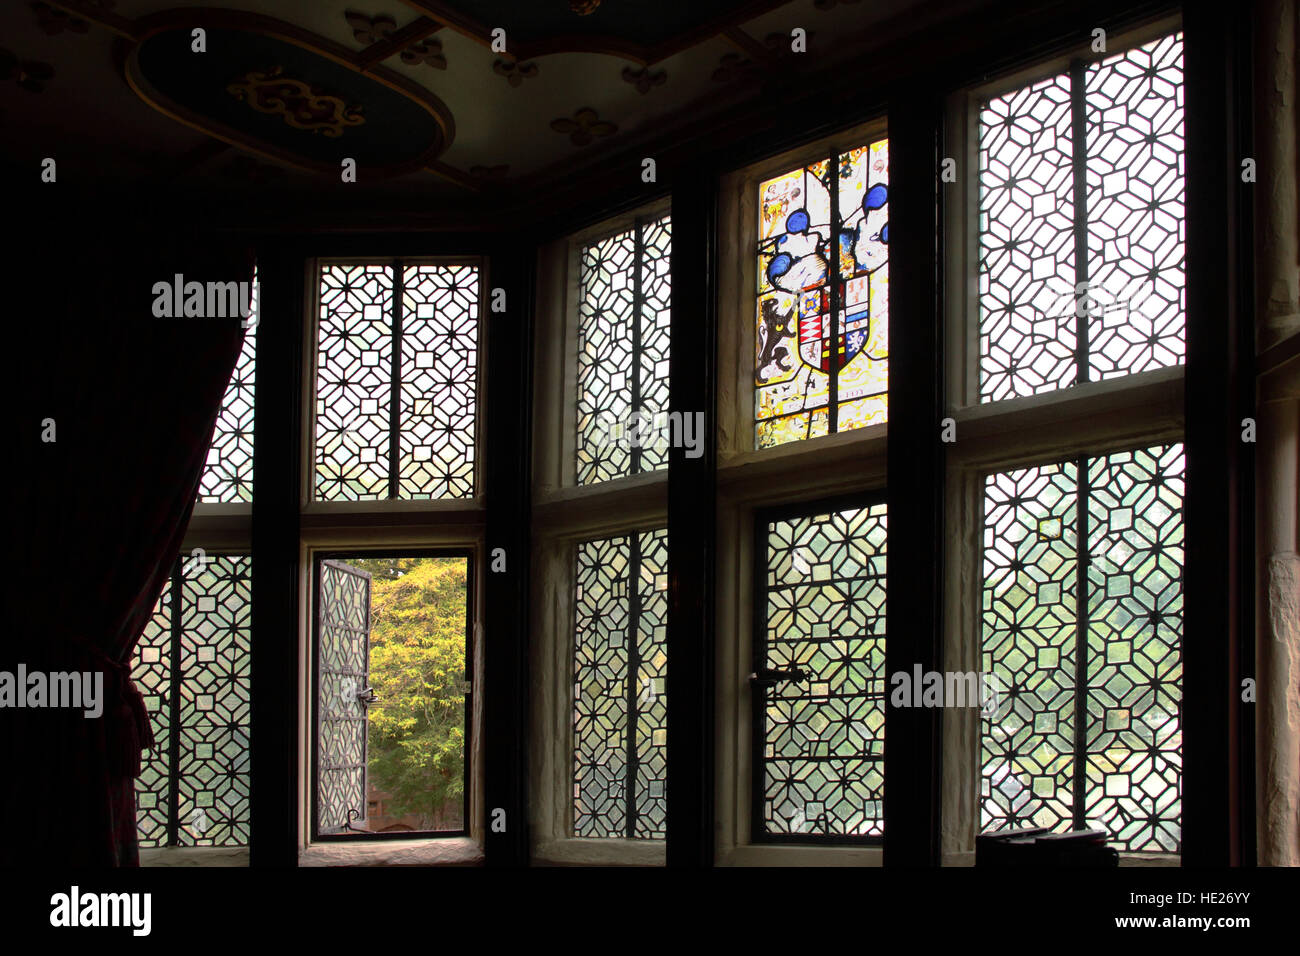 Leaded engraved medieval windows in the Great Chamber of New Hall Manor, now hotel, at Sutton Coldfield. - Stock Image